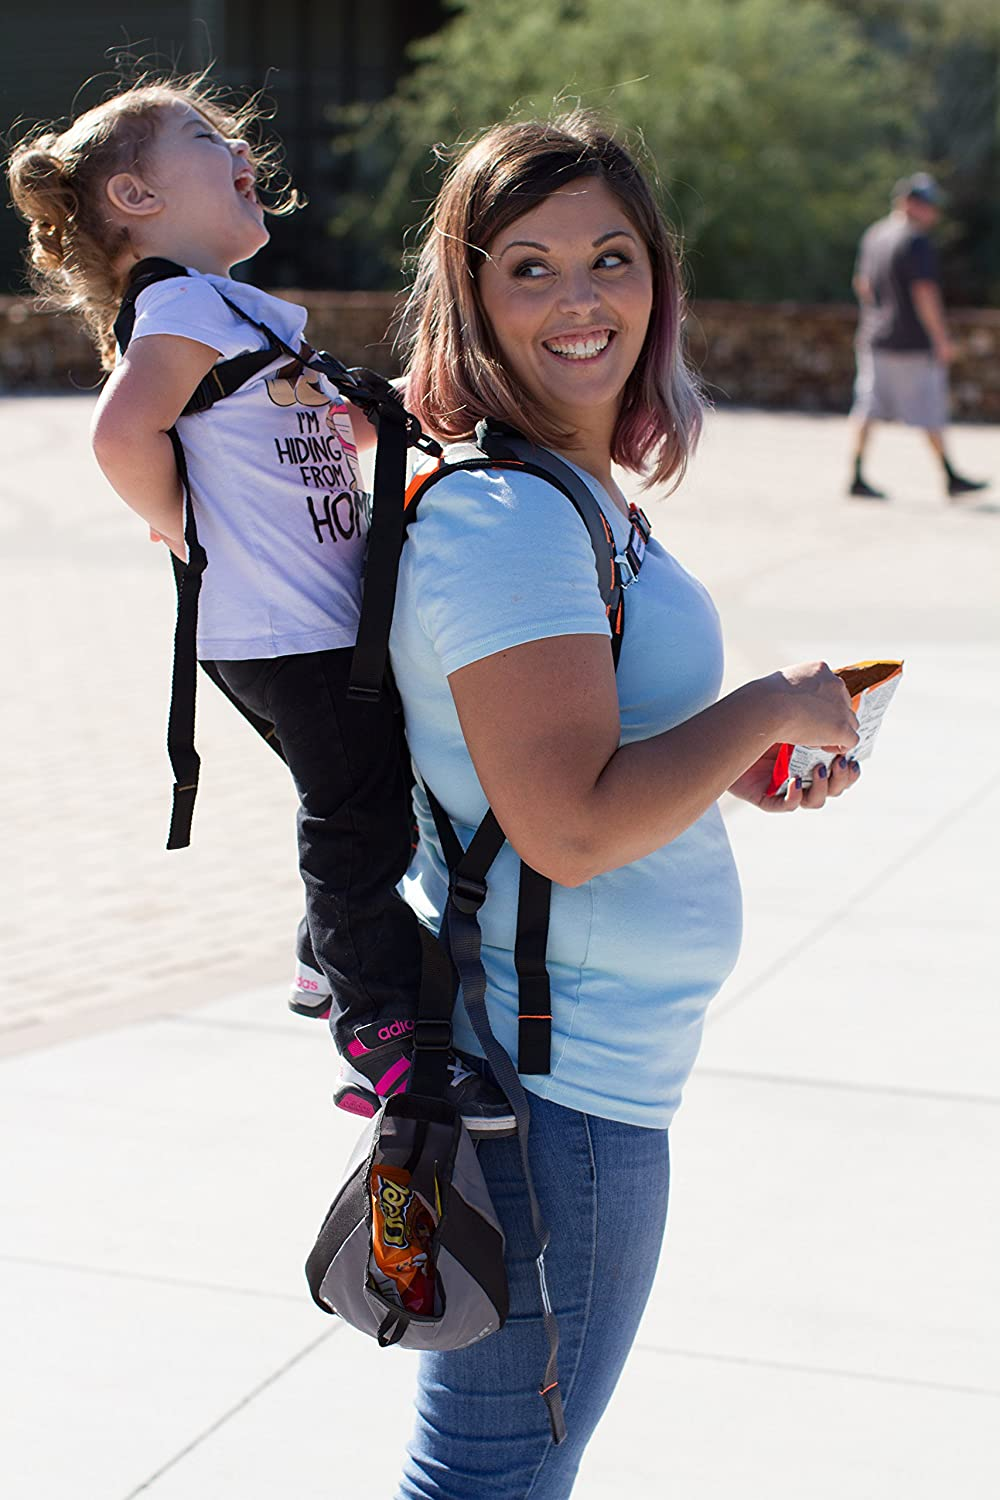 Piggyback Rider Child Safety Harness - use for Replacement or Spare - for Hiking, Parks, Travel, Events, Amusement Parks, Festival, Concerts, Grocery Stores